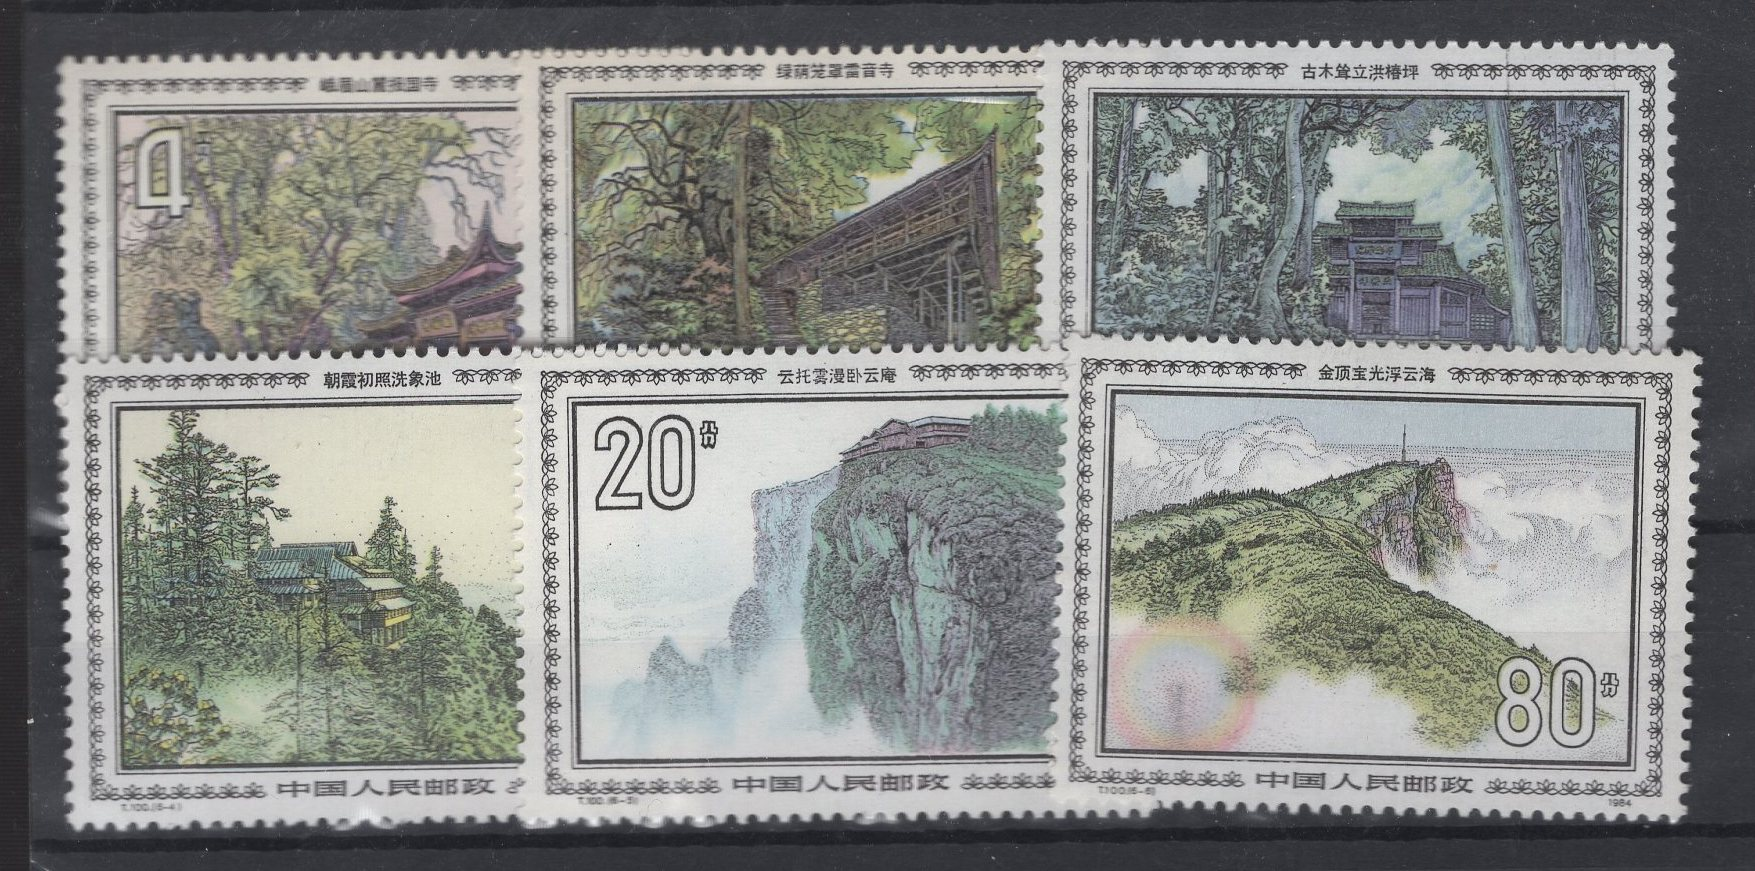 https://www.norstamps.com/content/images/stamps/187000/187849.jpg